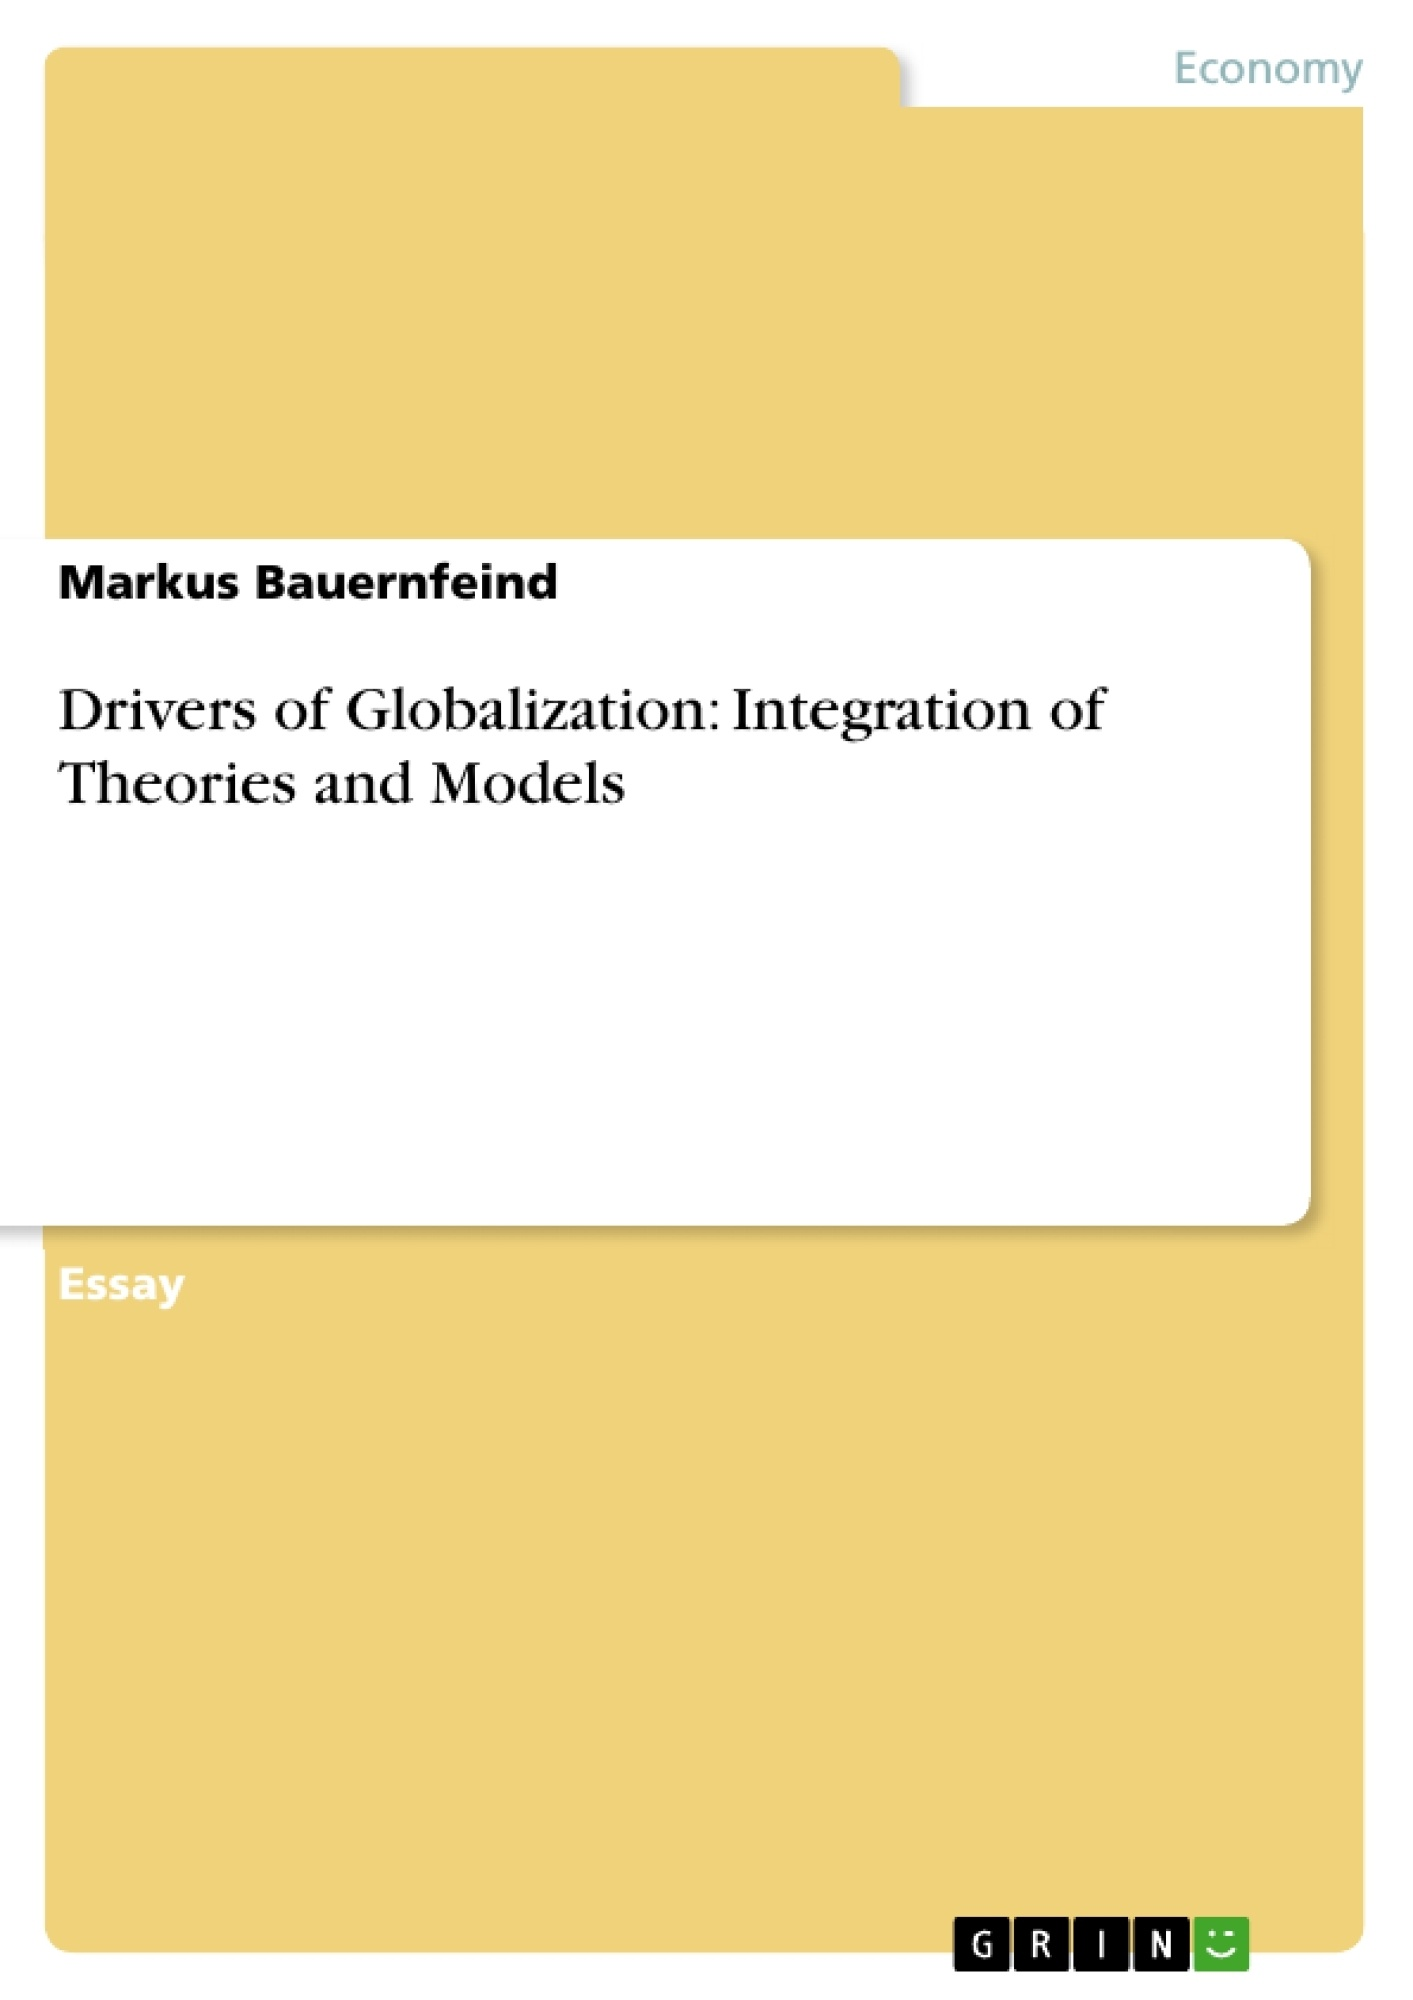 GRIN - Drivers of Globalization: Integration of Theories and Models